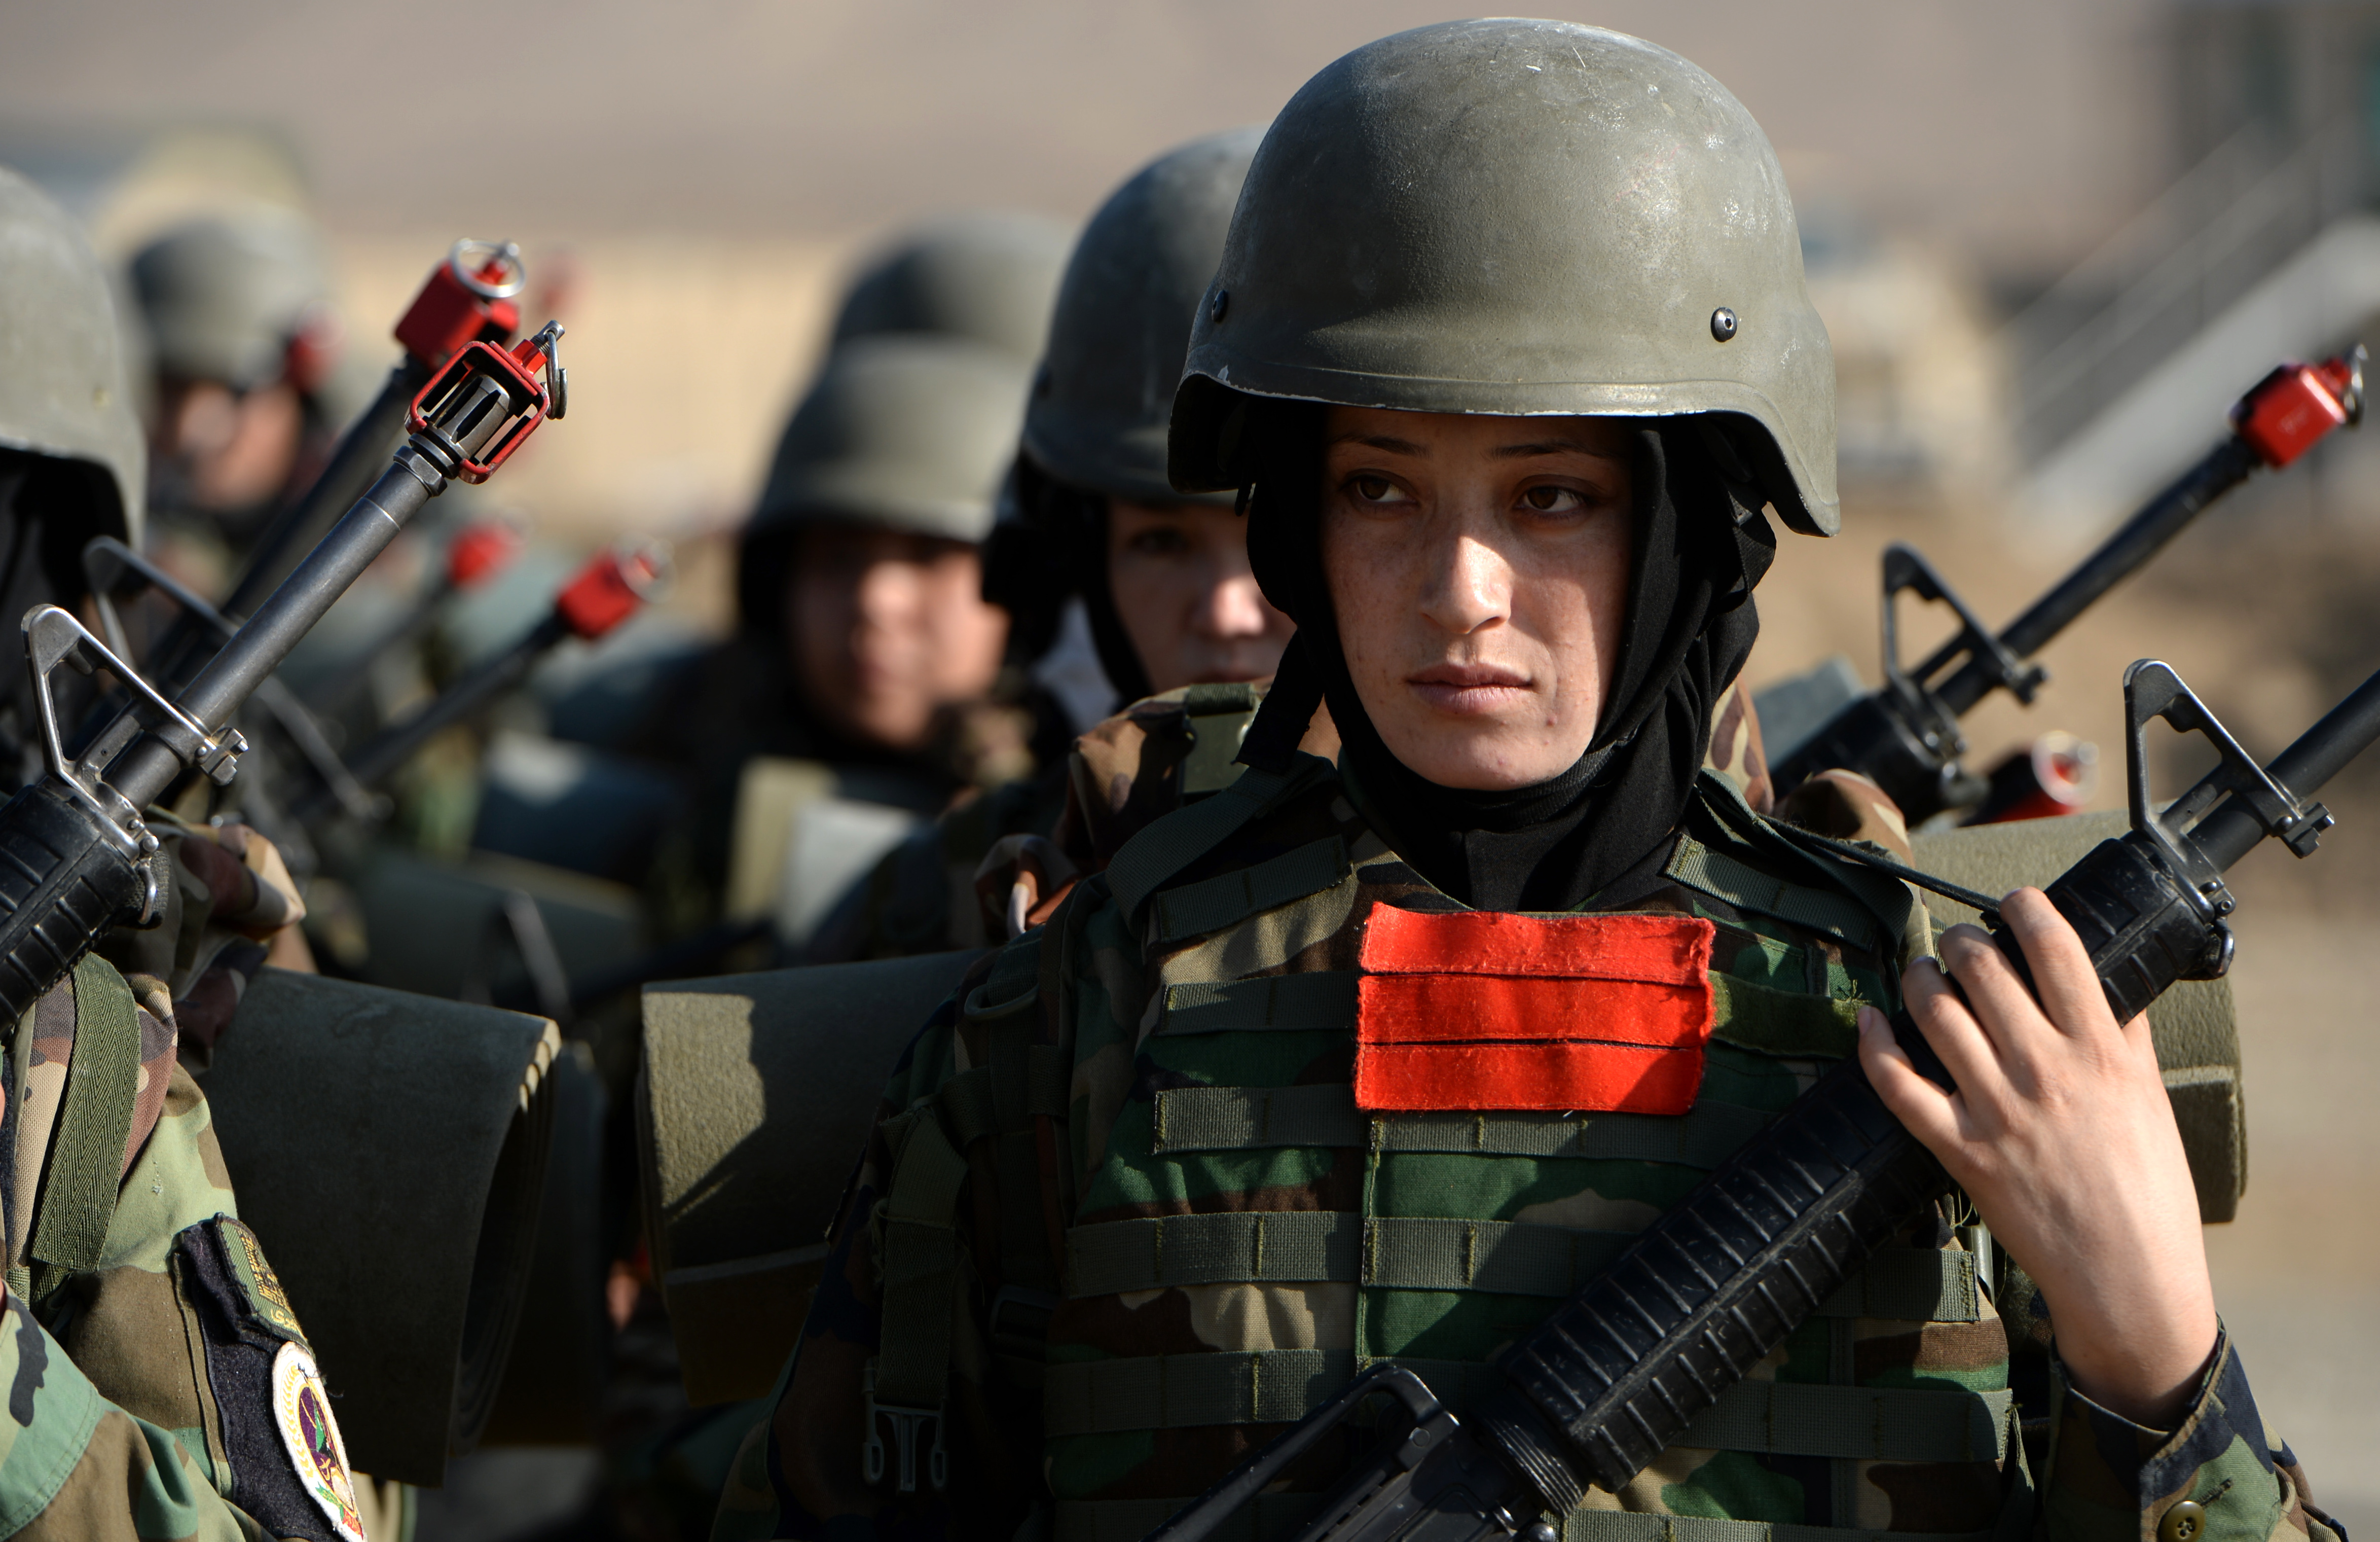 Afghan army seeks to recruit more women